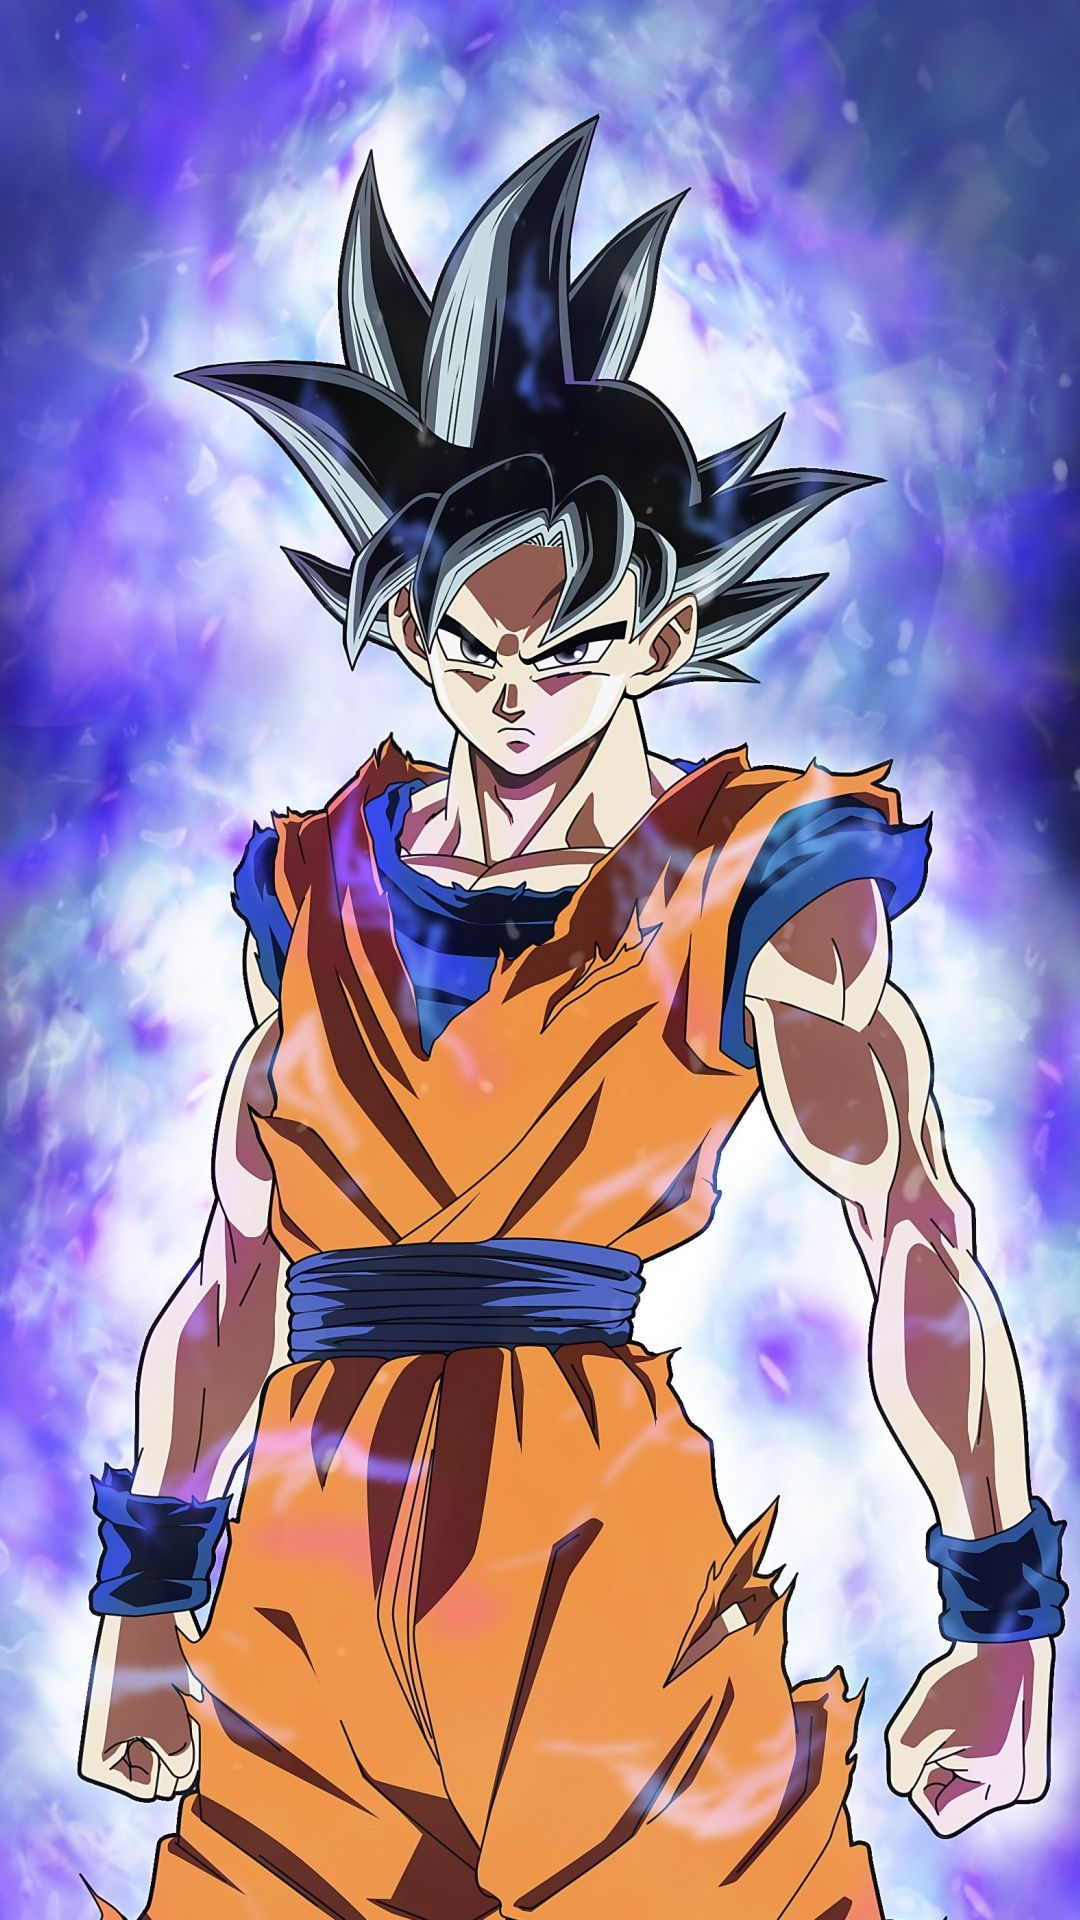 Anime Dargon Ball Super Goku Art 1080x1920 Wallpaper Anime Dragon Ball Super Dragon Ball Super Goku Dbz Wallpapers